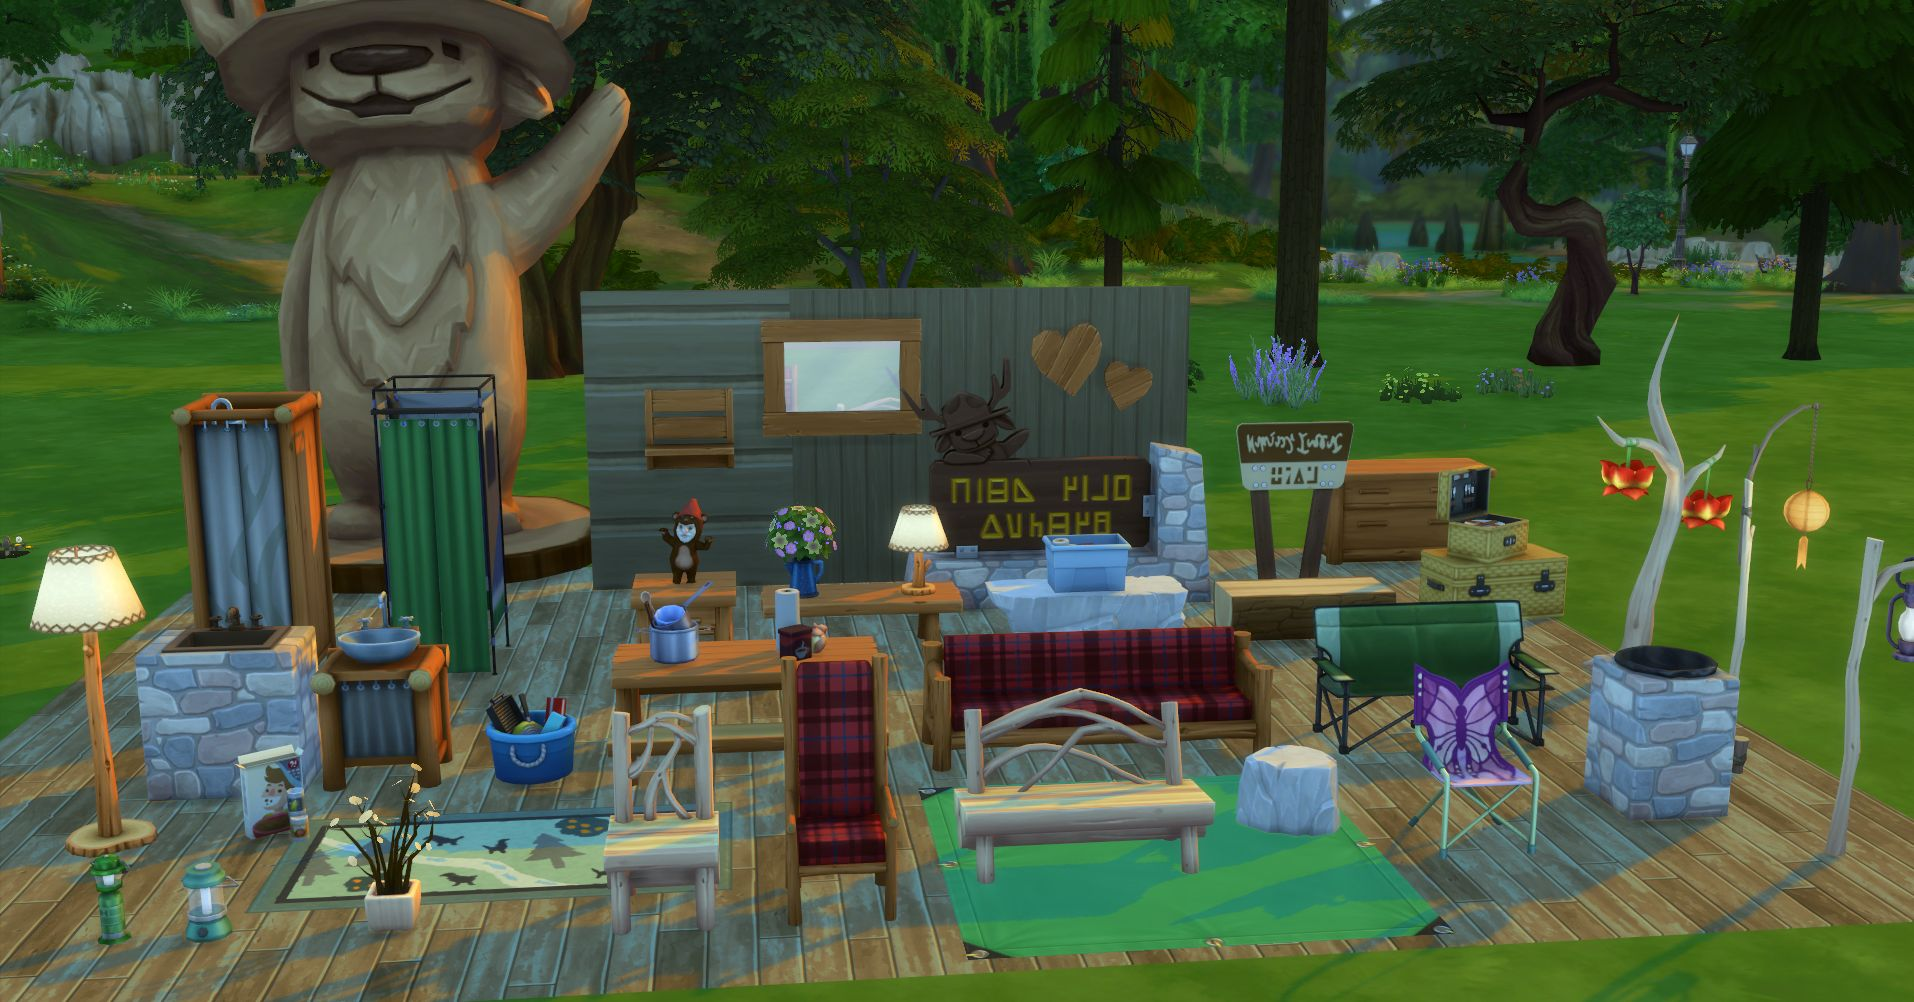 The sims 4 outdoor retreat pc mac punktid for Sims 4 fishing